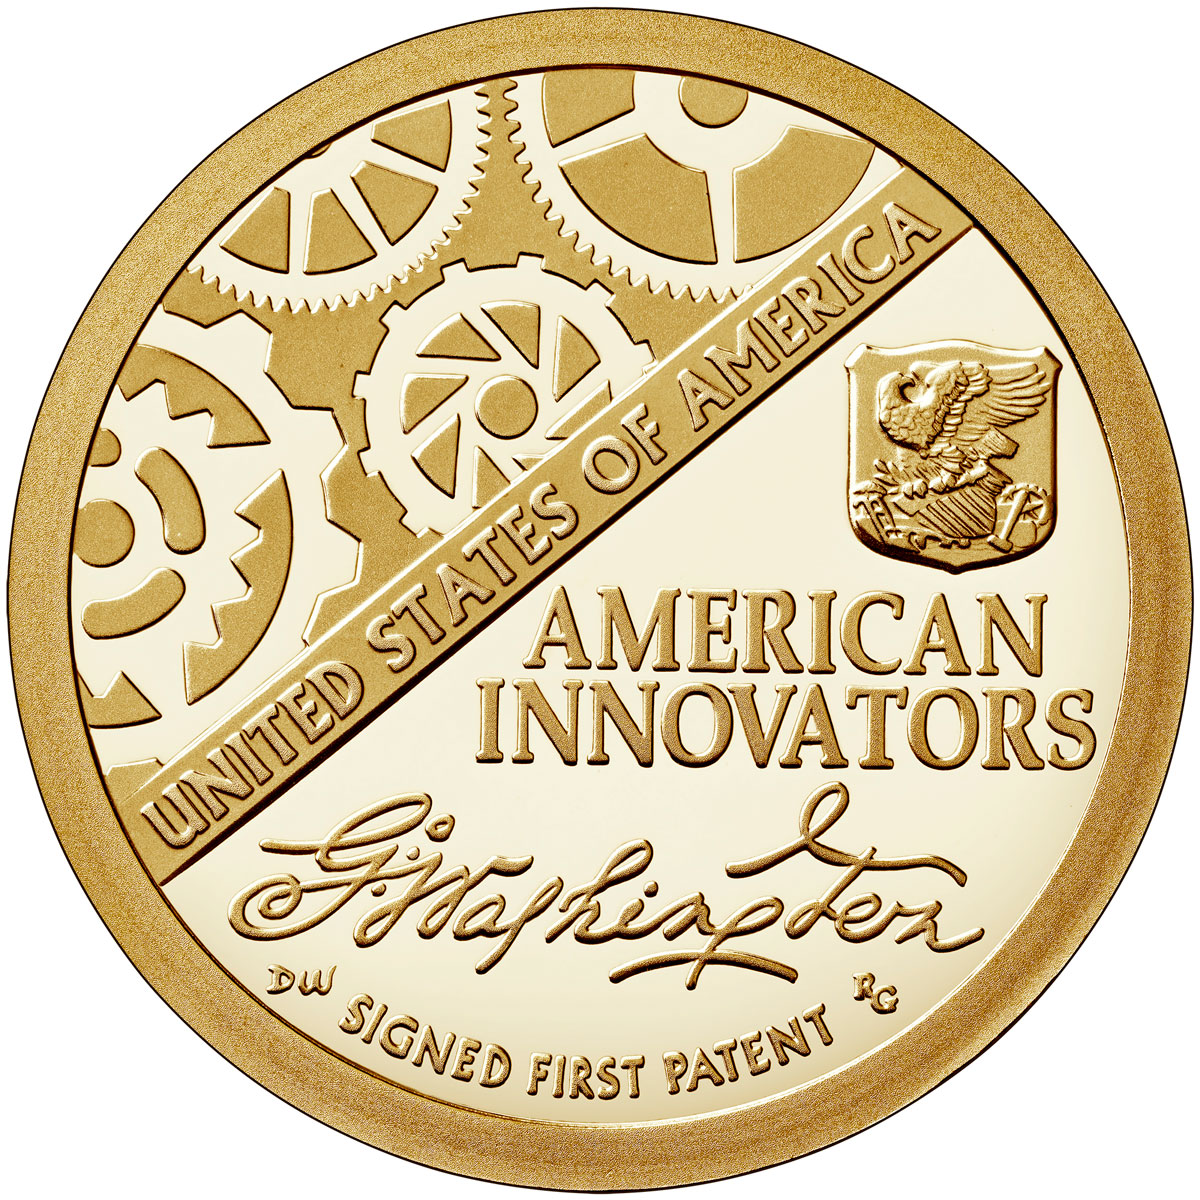 2018-S American Innovation Washington-Signed First Patent Commemorative Clad Dollar Proof Coin GEM Proof